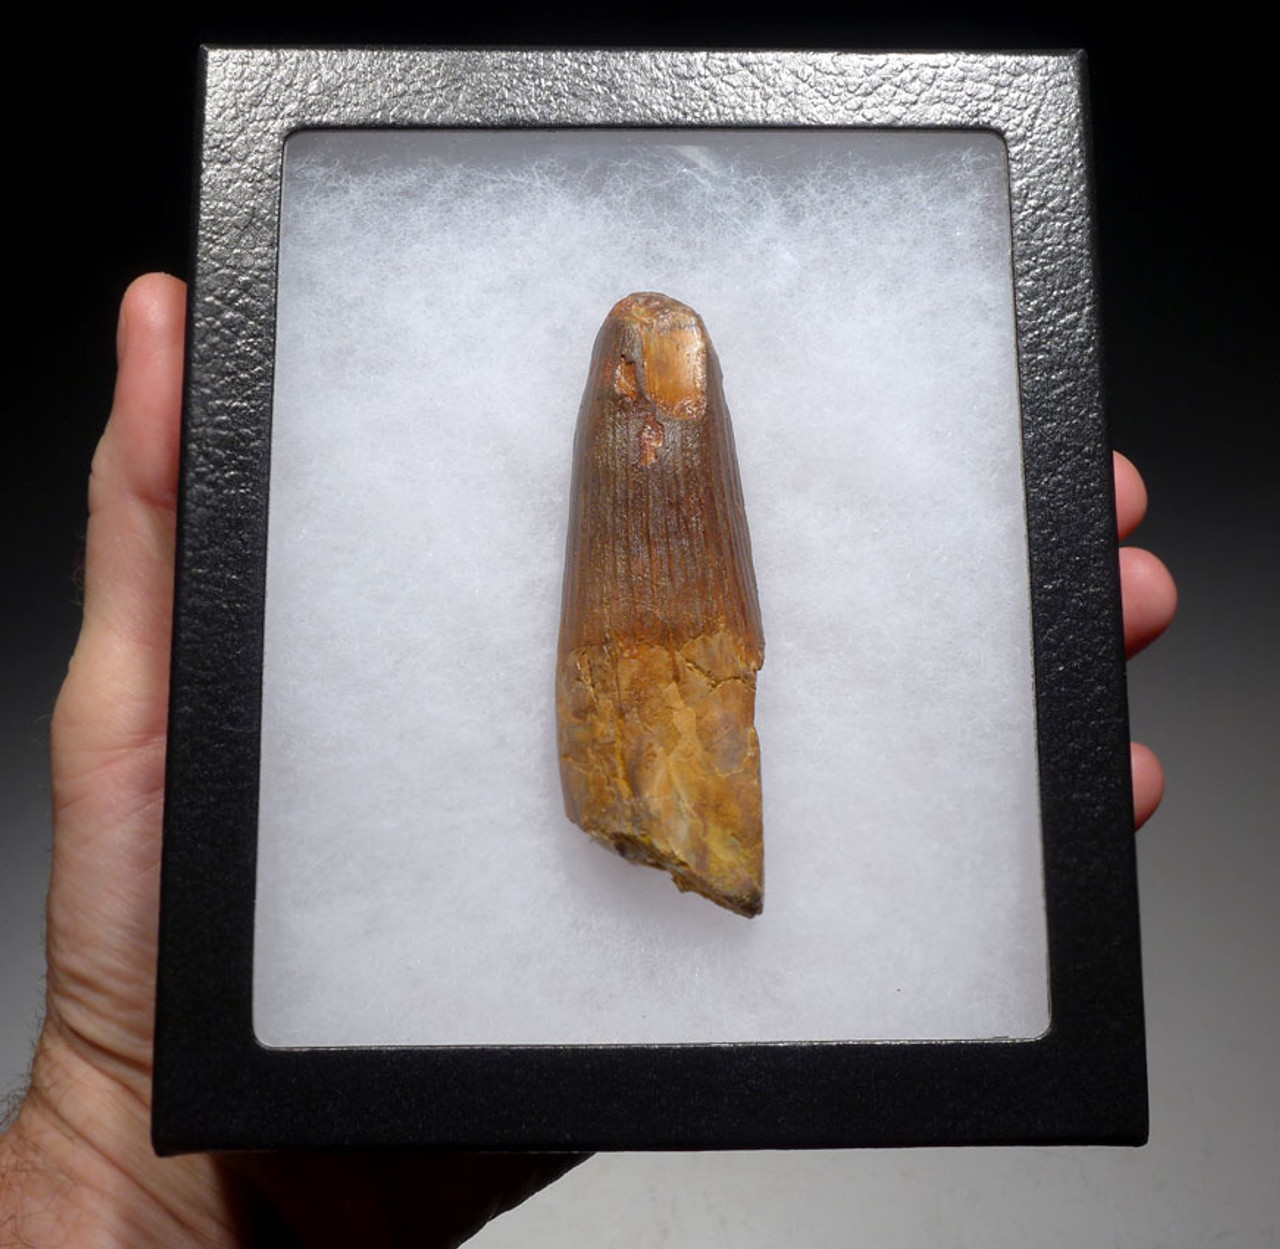 DT5-308 - UNBROKEN LARGE 3.75 INCH SPINOSAURUS TOOTH FROM A HUGE DINOSAUR